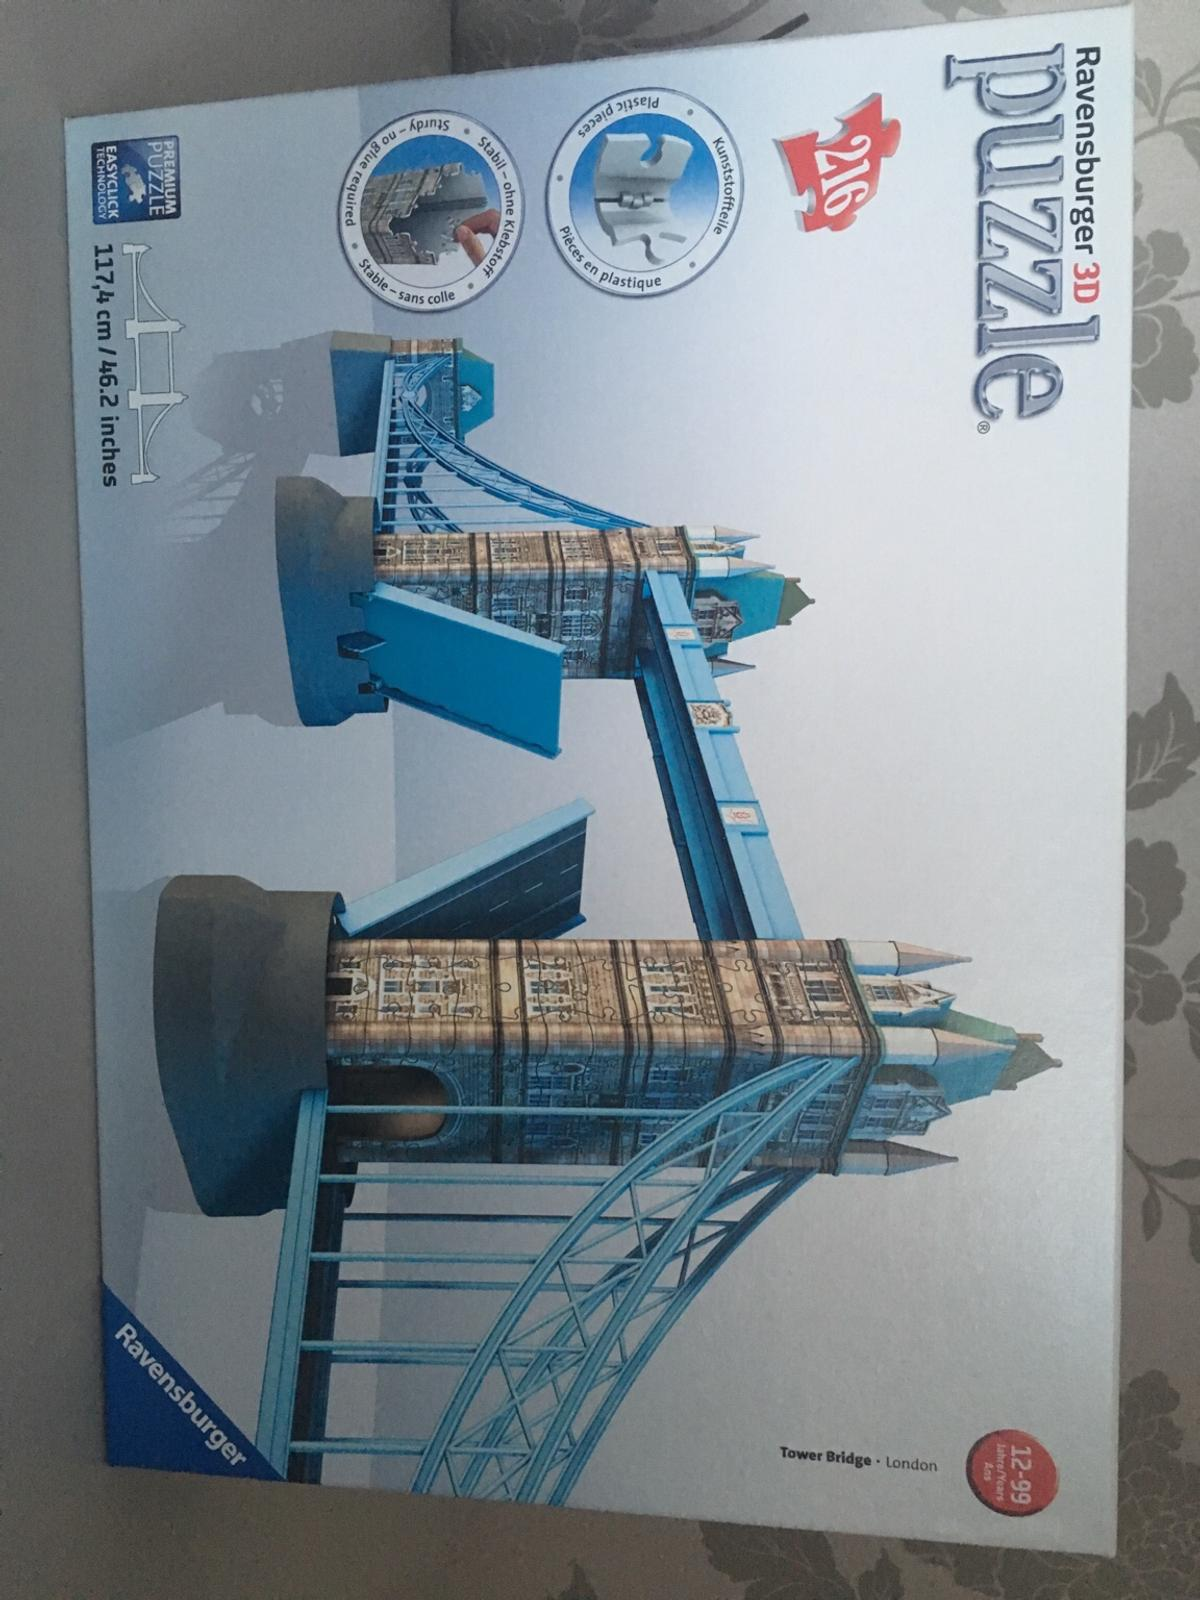 b2797be08 Ravensburger 3D Puzzle Tower Bridge in TN33 Rother for £15.00 for ...